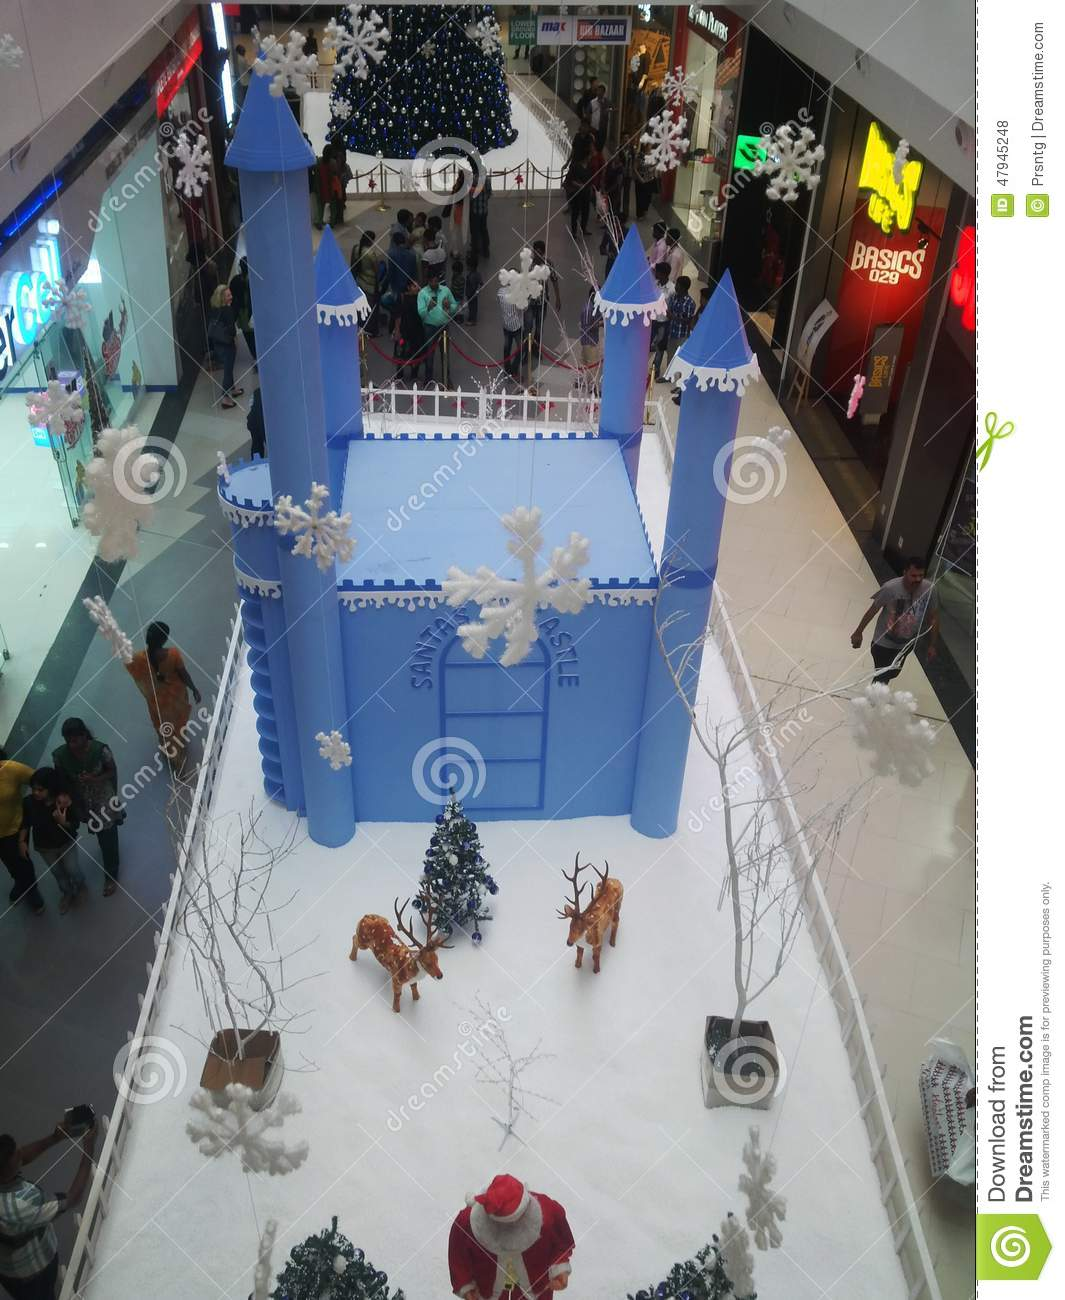 Christmas Decorations In Shopping Malls: Christmas Decoration In Shopping Mall Editorial Stock